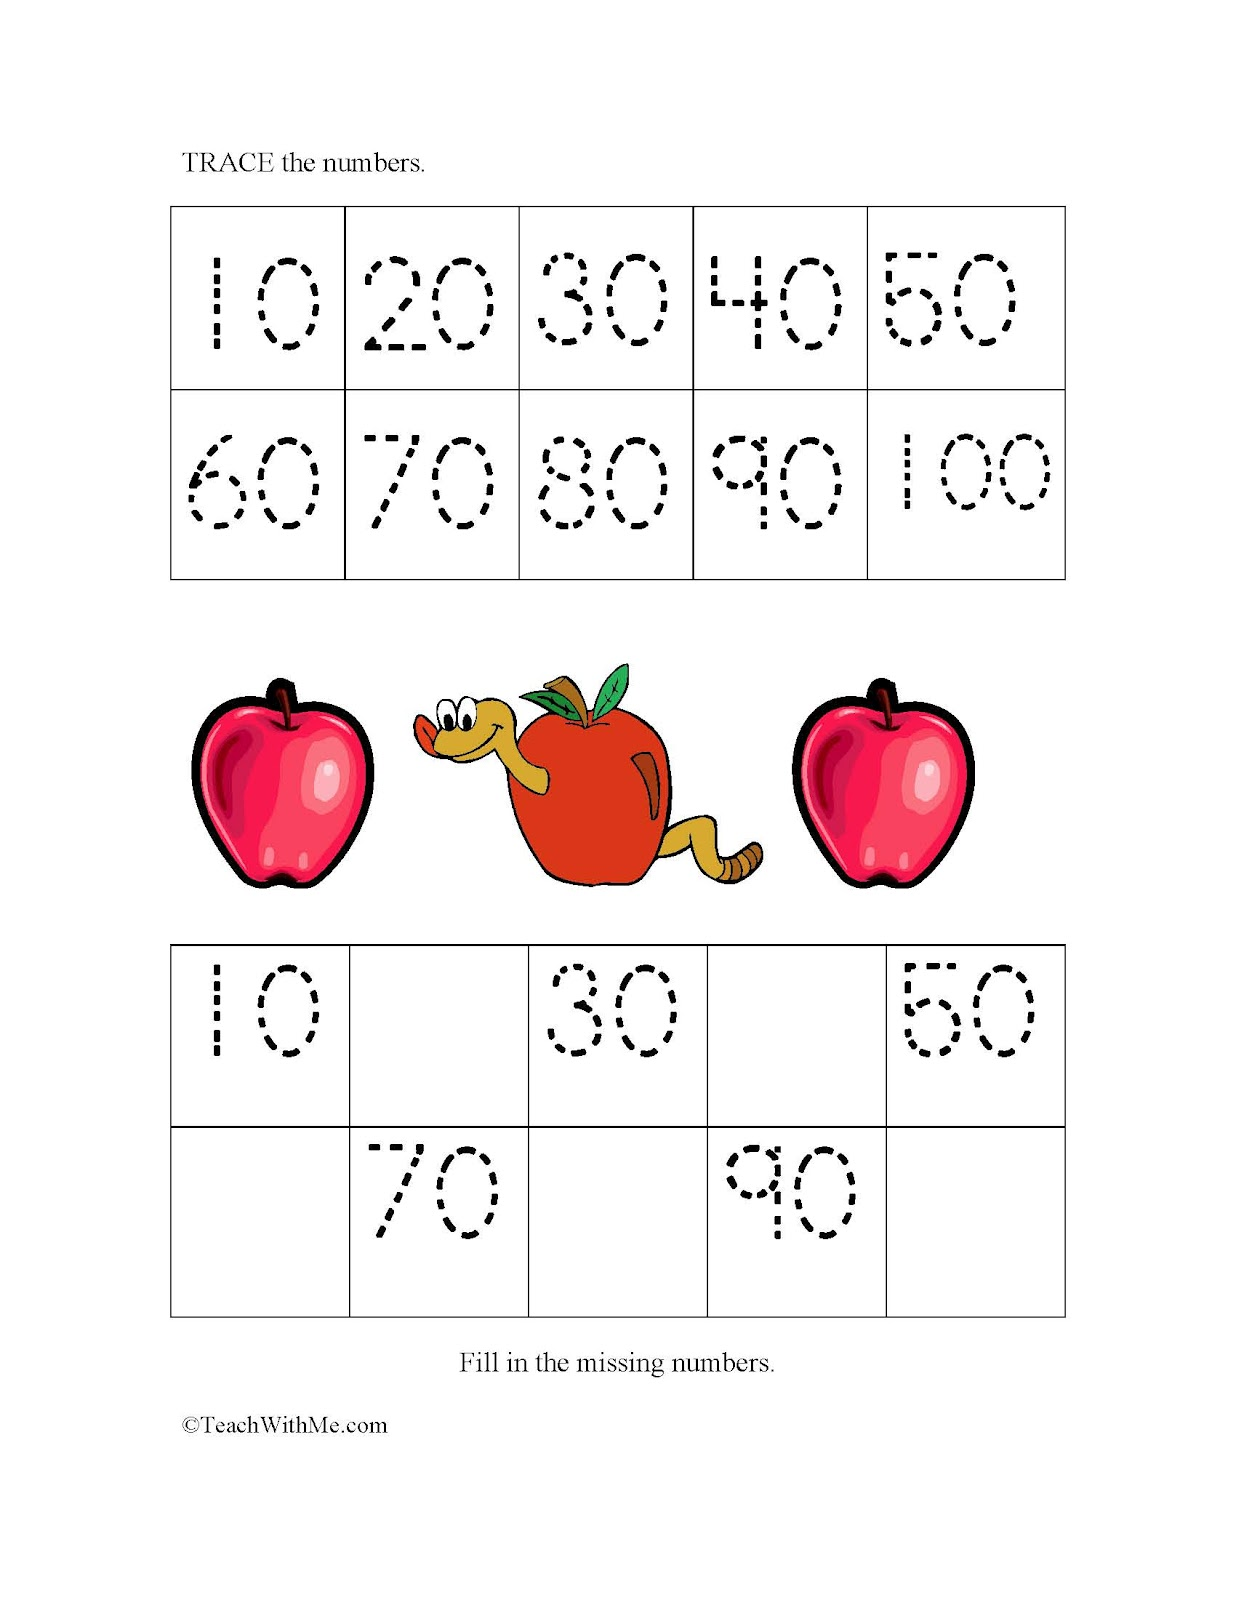 Counting By 3s Worksheet – Count by 10s Worksheet